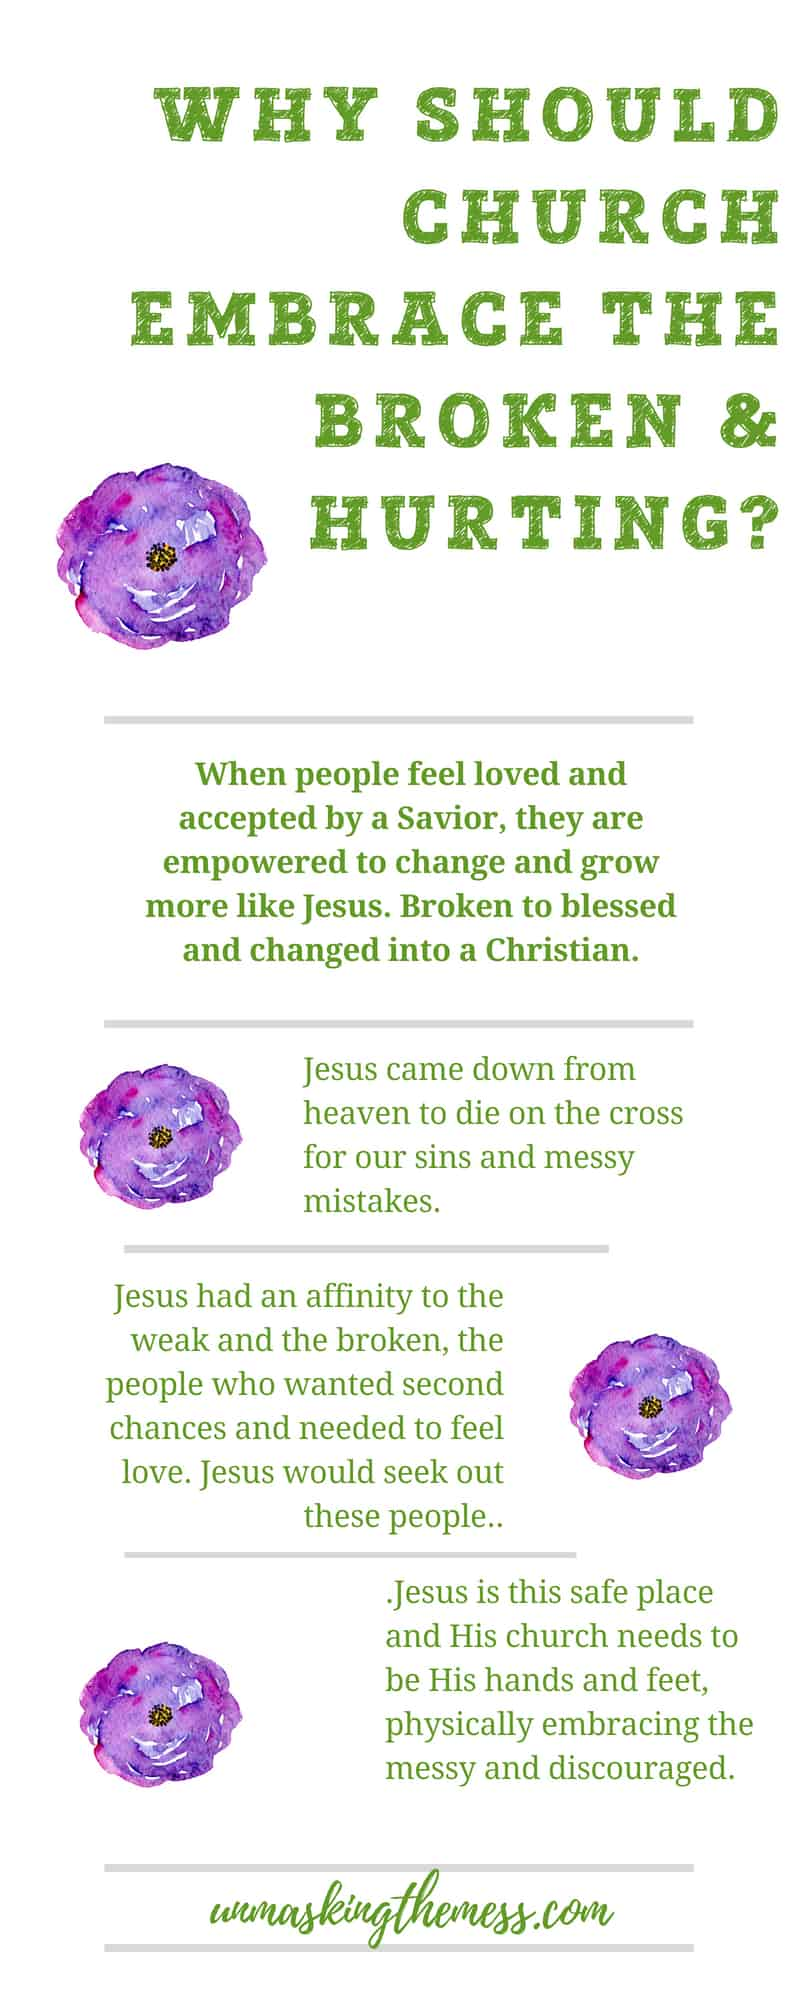 Why the Most Broken and Hurt People Need to be at Church. Christian churches and outreach. How do we welcome others in? Make church a place families want to be. Accept everyone now broken, messy and hurt and see what Jesus can do. We need to embrace others with open arms. #truths #sad #feelings #people #church